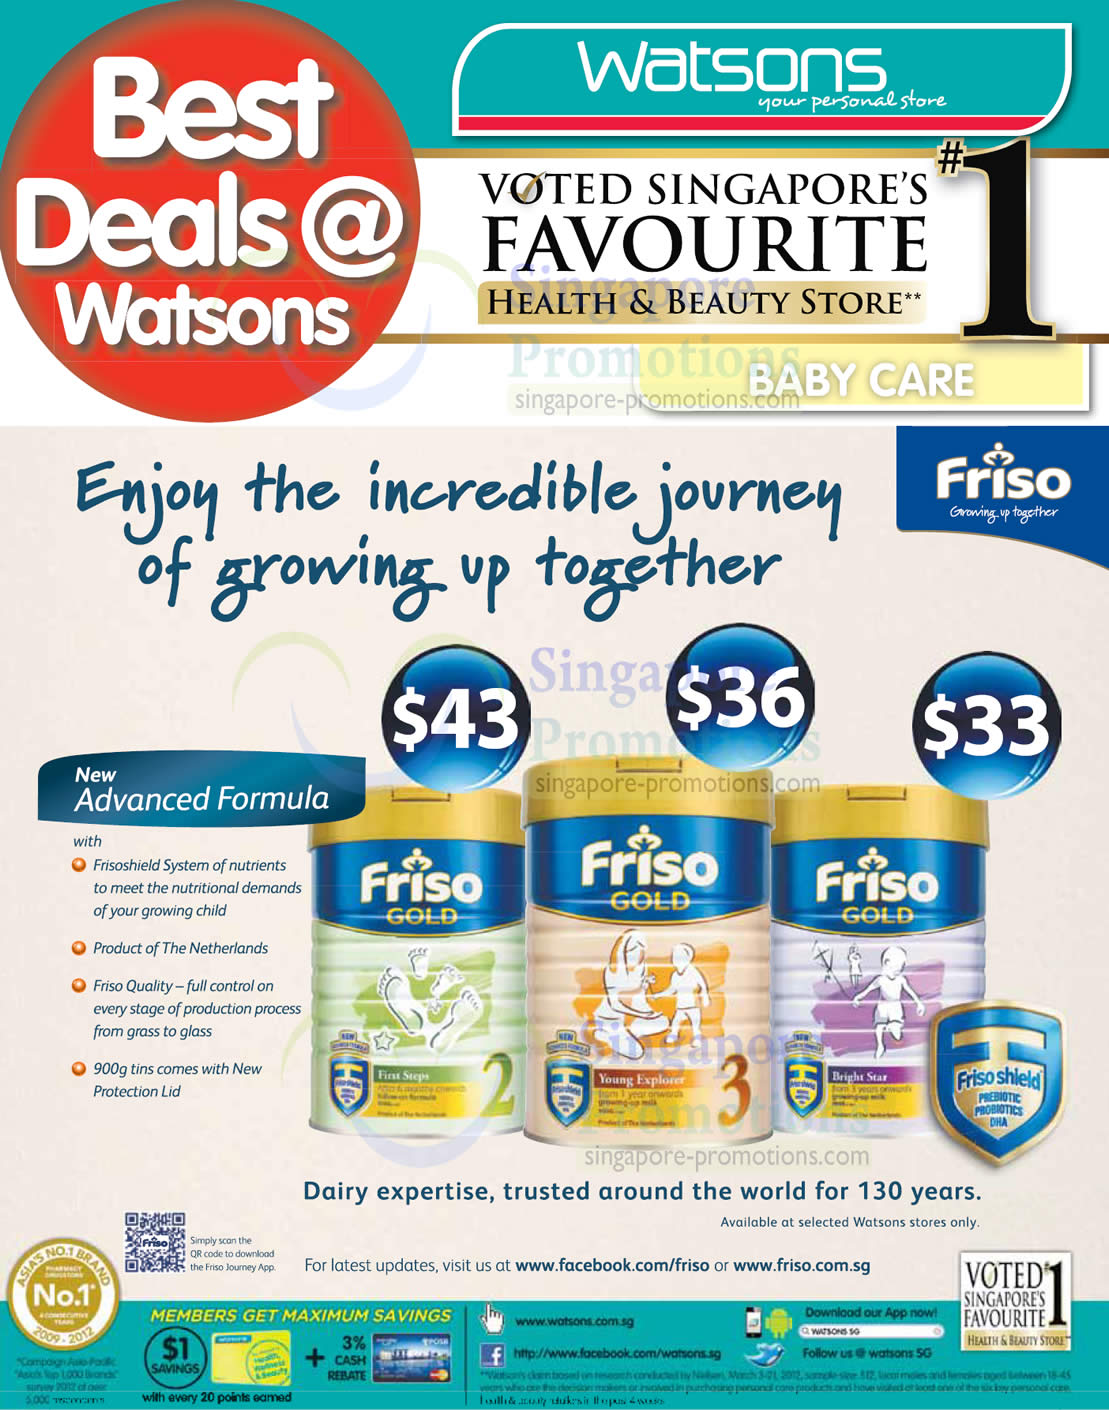 Friso Gold 23 Watsons Personal Care Health Cosmetics Beauty Frisolac 2 900gr